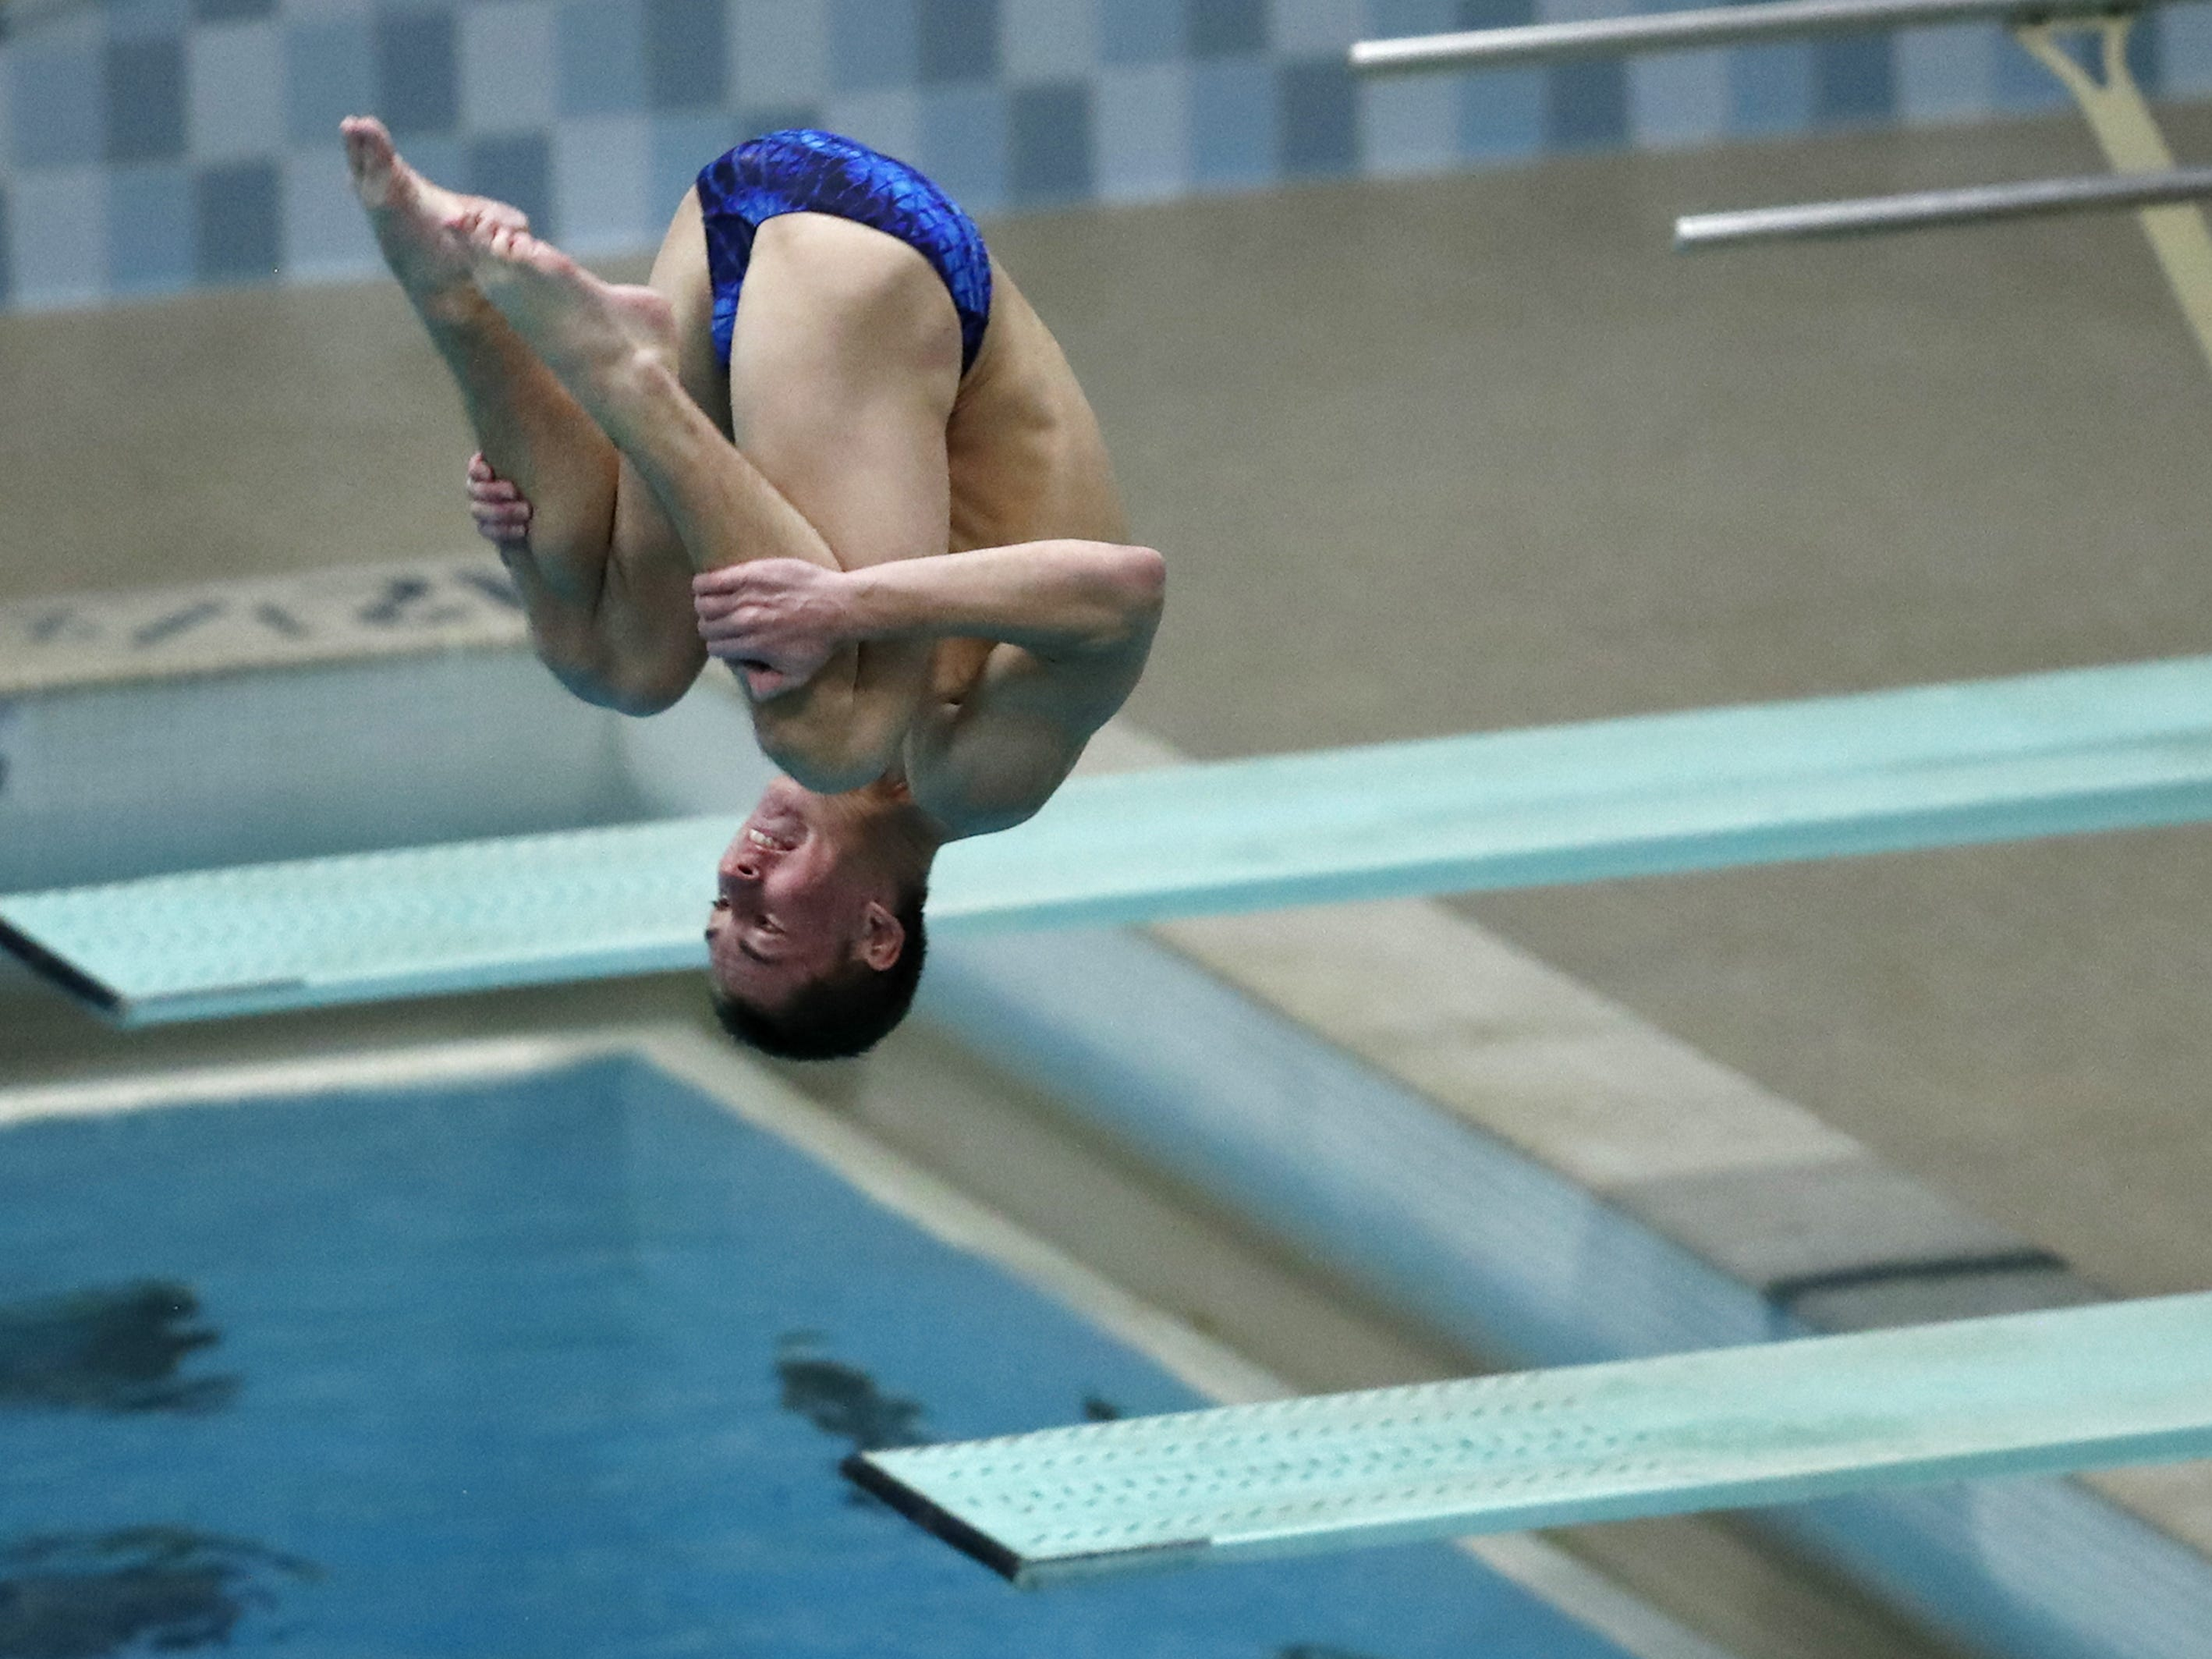 Brookfield Central/East's Braden Rumpit dives during the during the Division 1 2019 State Boys Swimming and Diving Championships Saturday, Feb. 16, 2019, at the UW Natatorium in Madison, Wis. Danny Damiani/USA TODAY NETWORK-Wisconsin